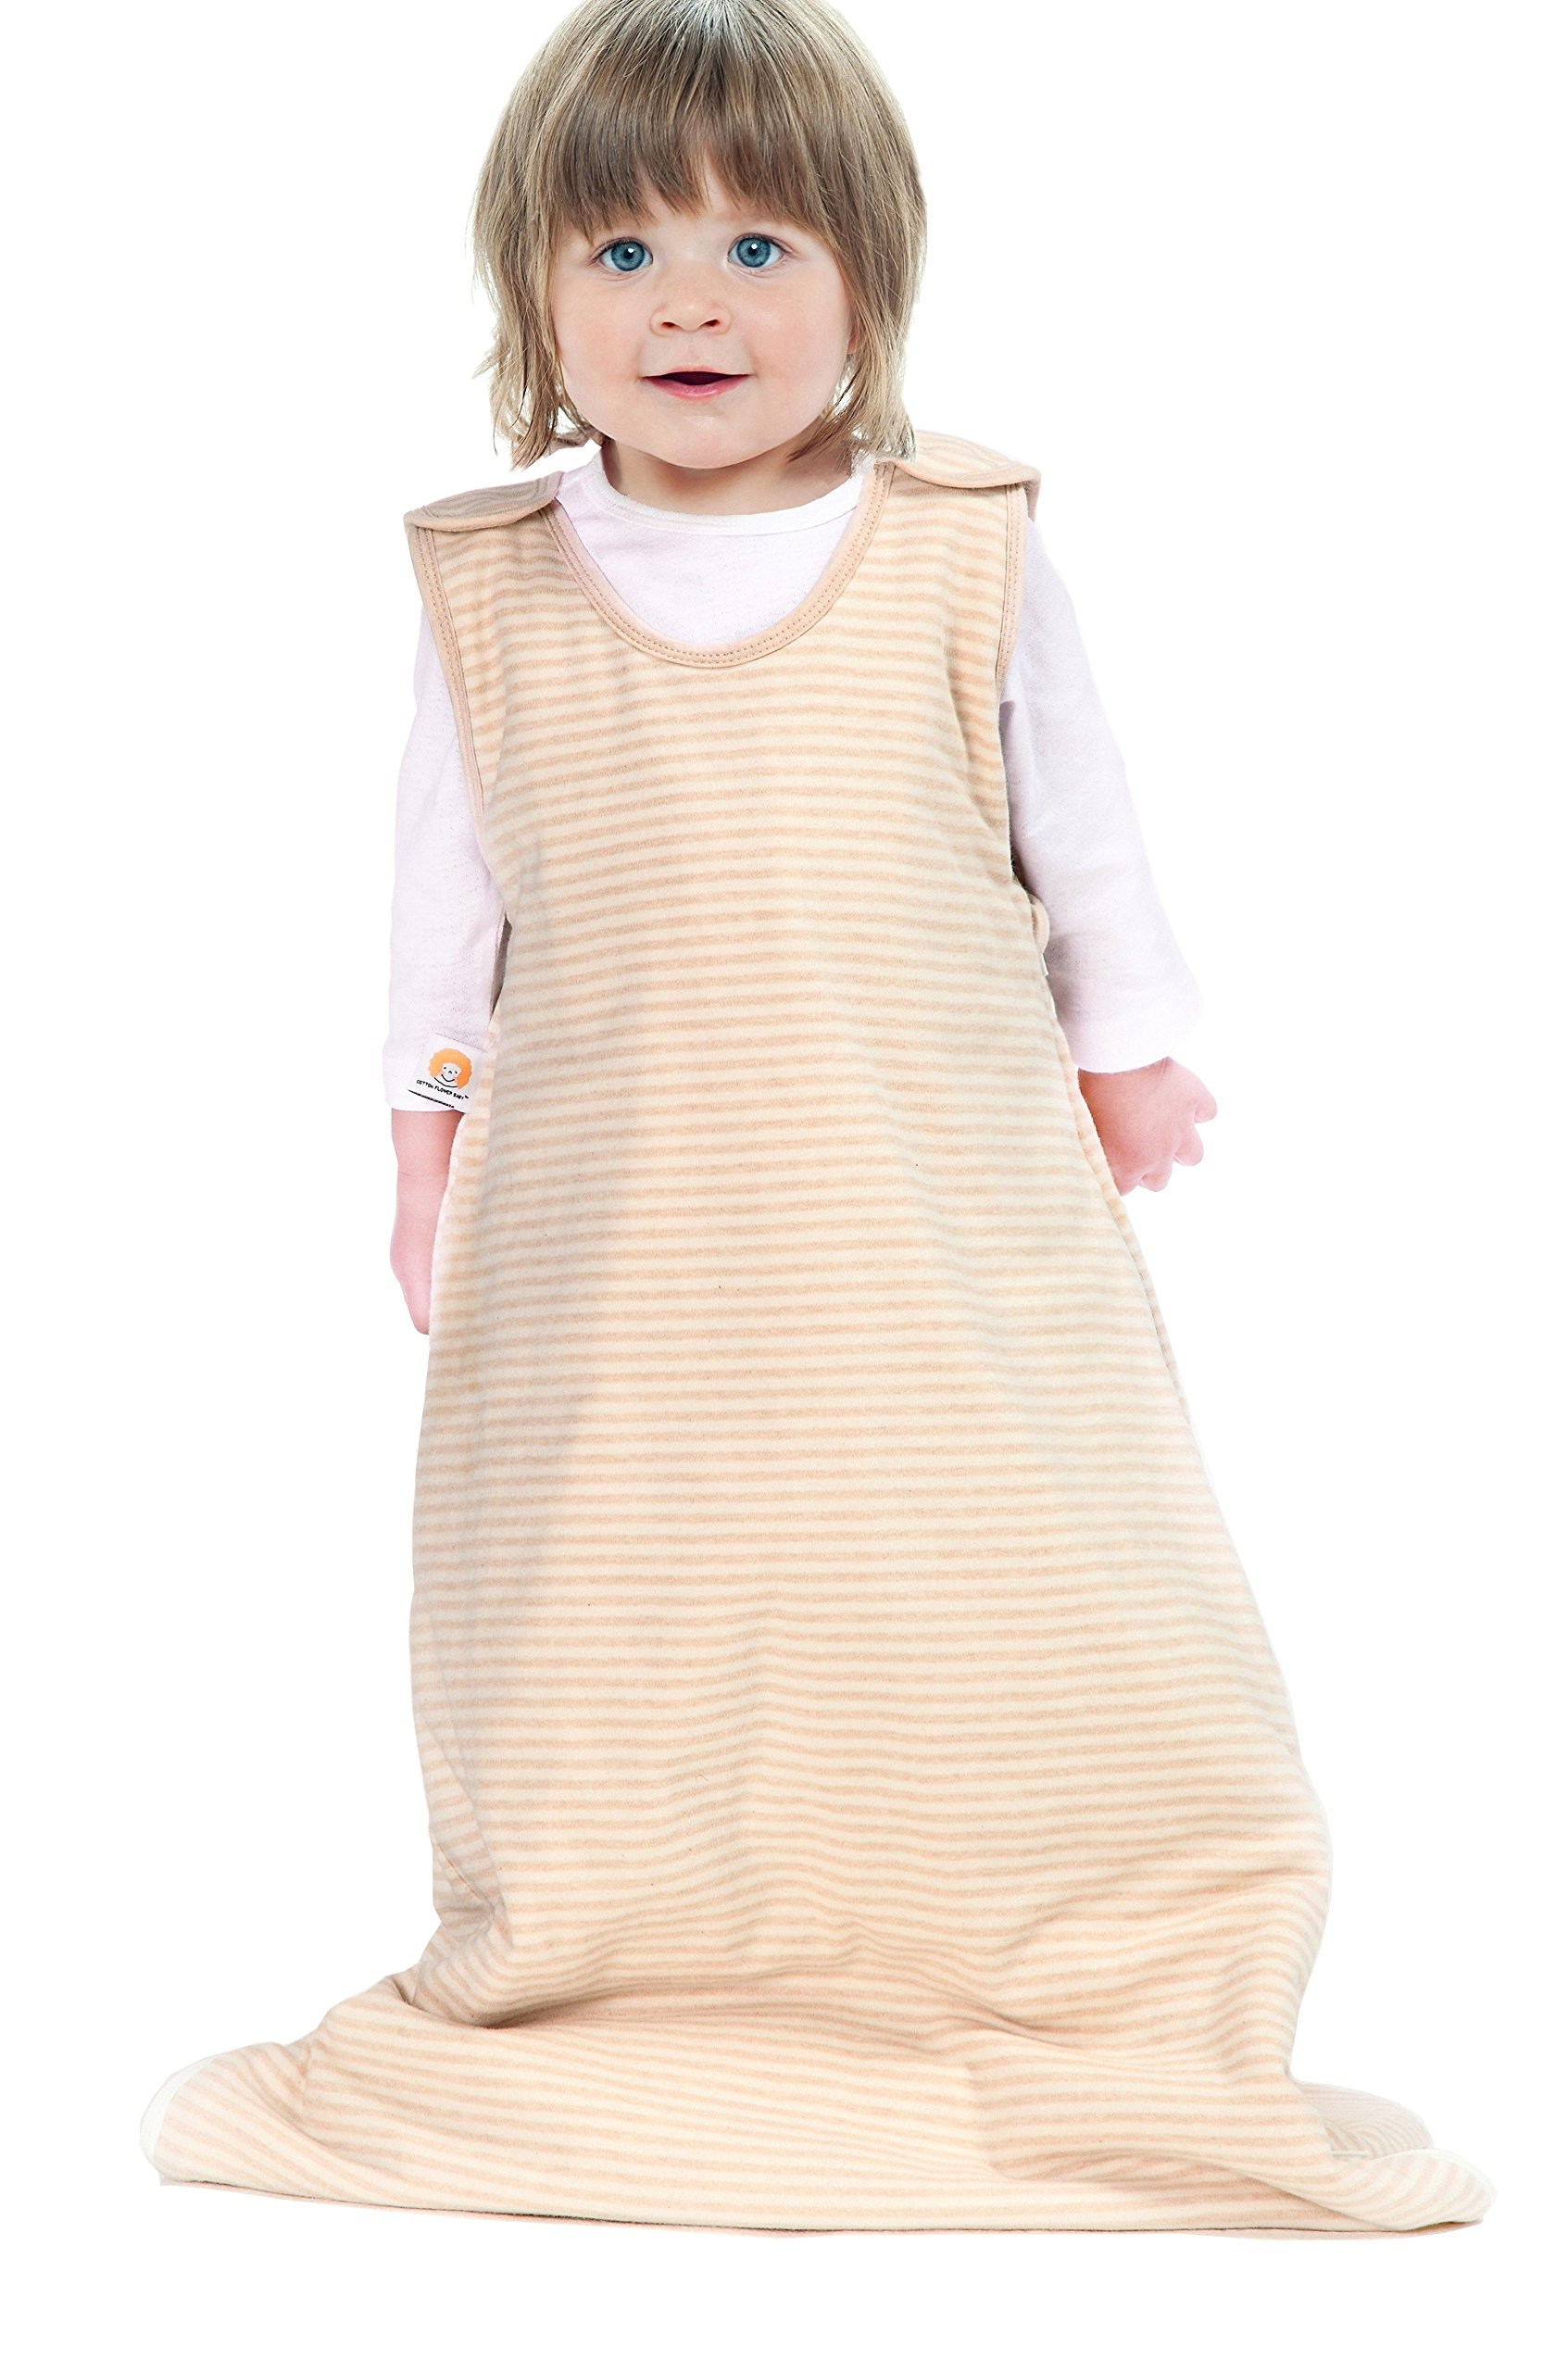 Cotton Flower Baby (Toddler) Sleeping Bag, 100% Cotton outer & filling, 1.5-2.5 & 2.5-4 Years by Cotton Flower Baby